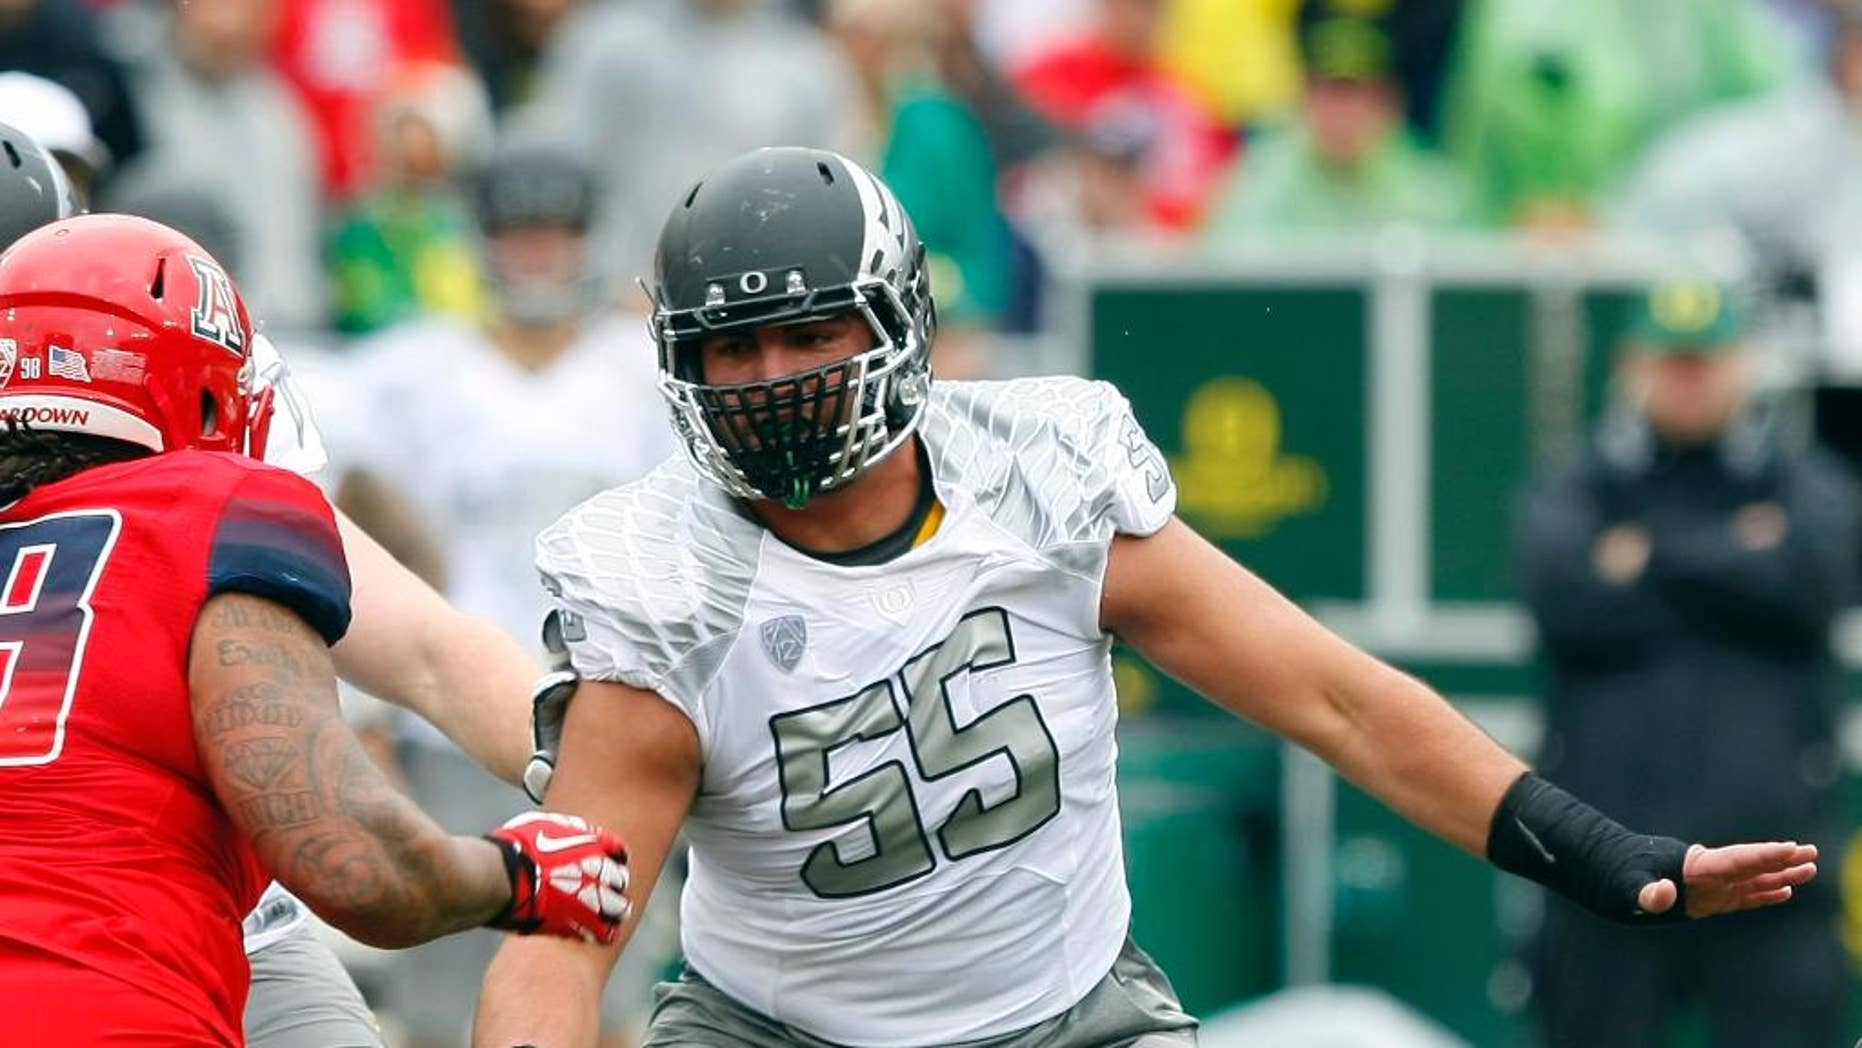 """This photo taken Nov. 23, 2013, shows Oregon offensive linesman Hroniss Grasu (55) during the first half of an NCAA football game against Arizona, in Tucson, Ariz. Grasu never would have played football if his parents had their way. Steve and Mariana Grasu, immigrants from Romania, preferred soccer over American football, which that saw as too violent. It was only reluctantly that he was allowed to kick for his high school team, and when a coach put him on the offensive line, well, he didn't exactly mention it to his folks. It was a long, silent ride home when the Grasus attended their son's first game. """"They enjoy it now. They come to every single game, home and away,'' he laughs.(AP Photo/Rick Scuteri)"""